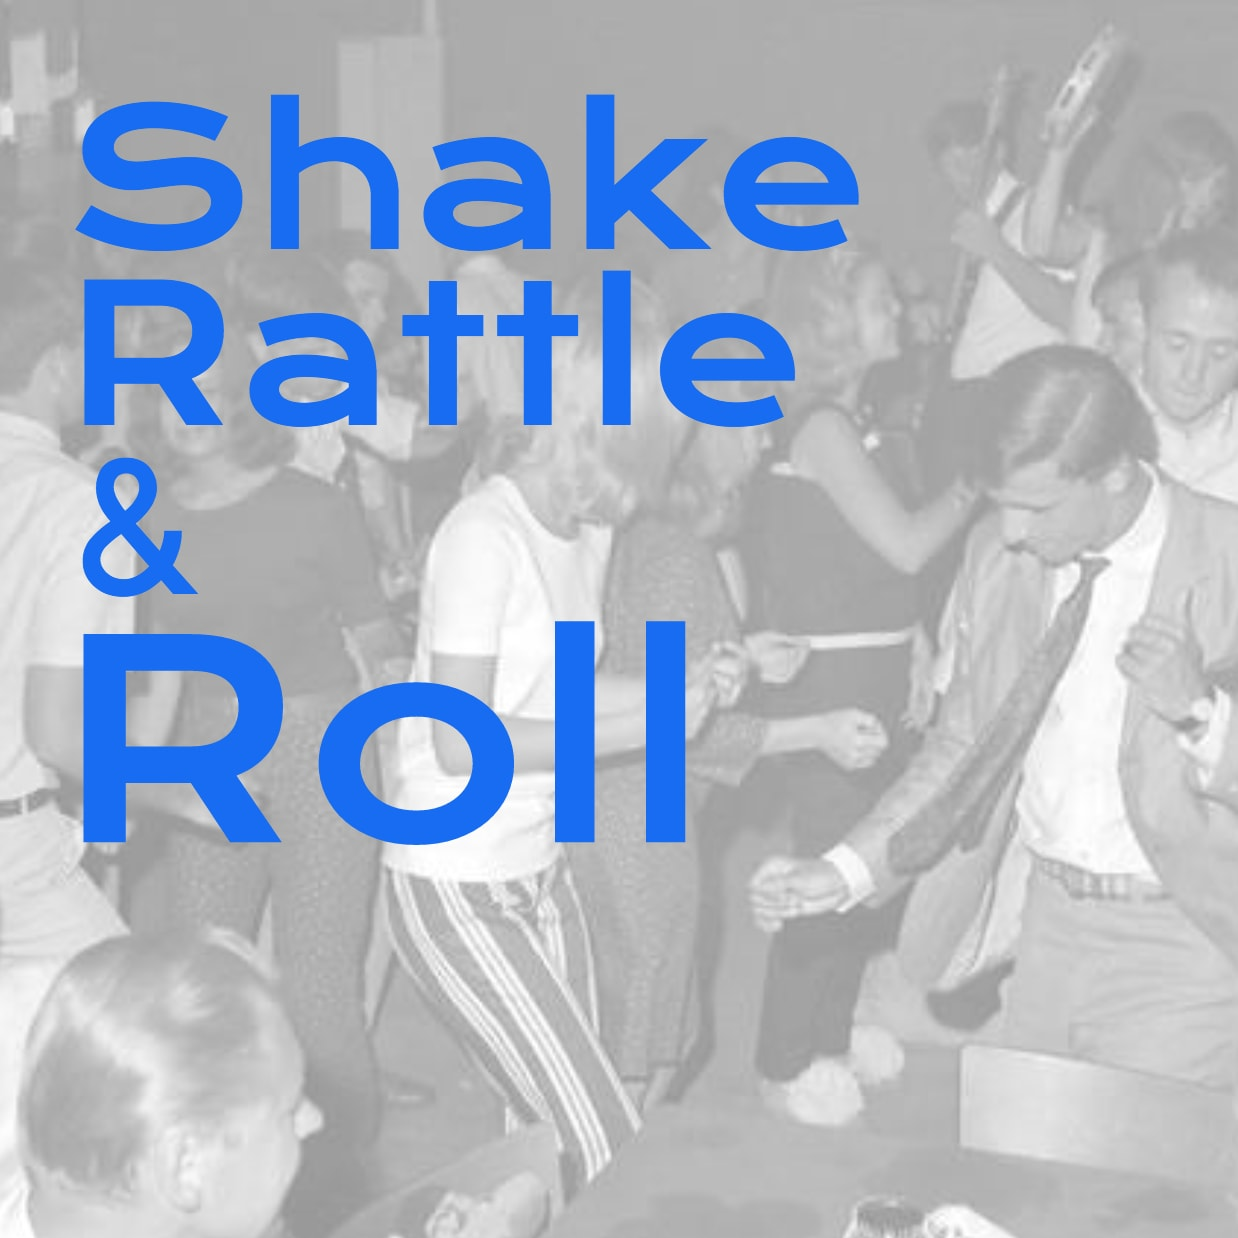 Shake Rattle & Roll